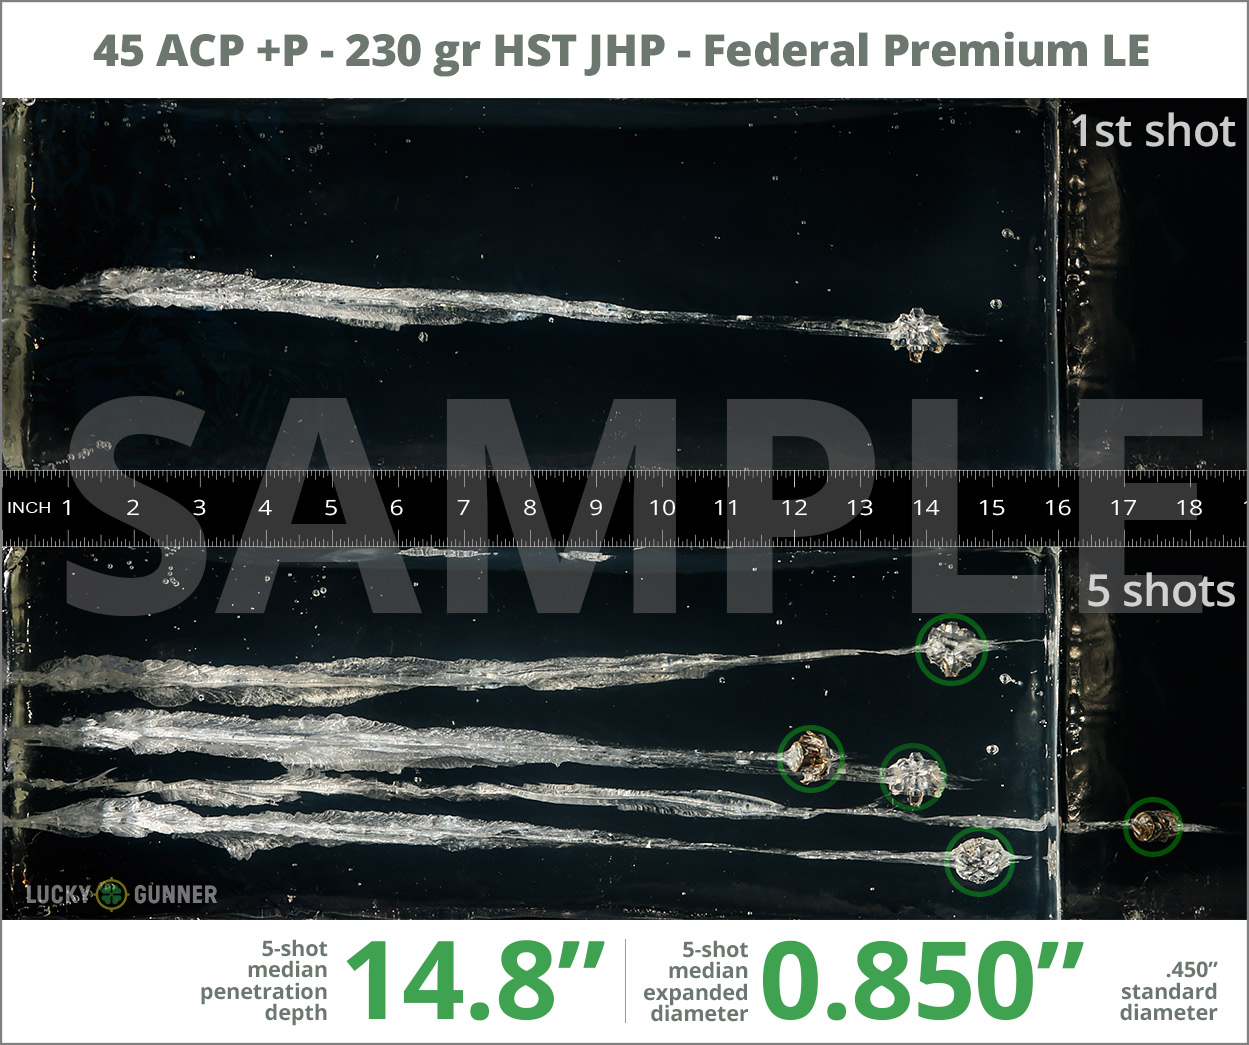 Handgun Self-Defense Ammunition - Ballistic Testing Data